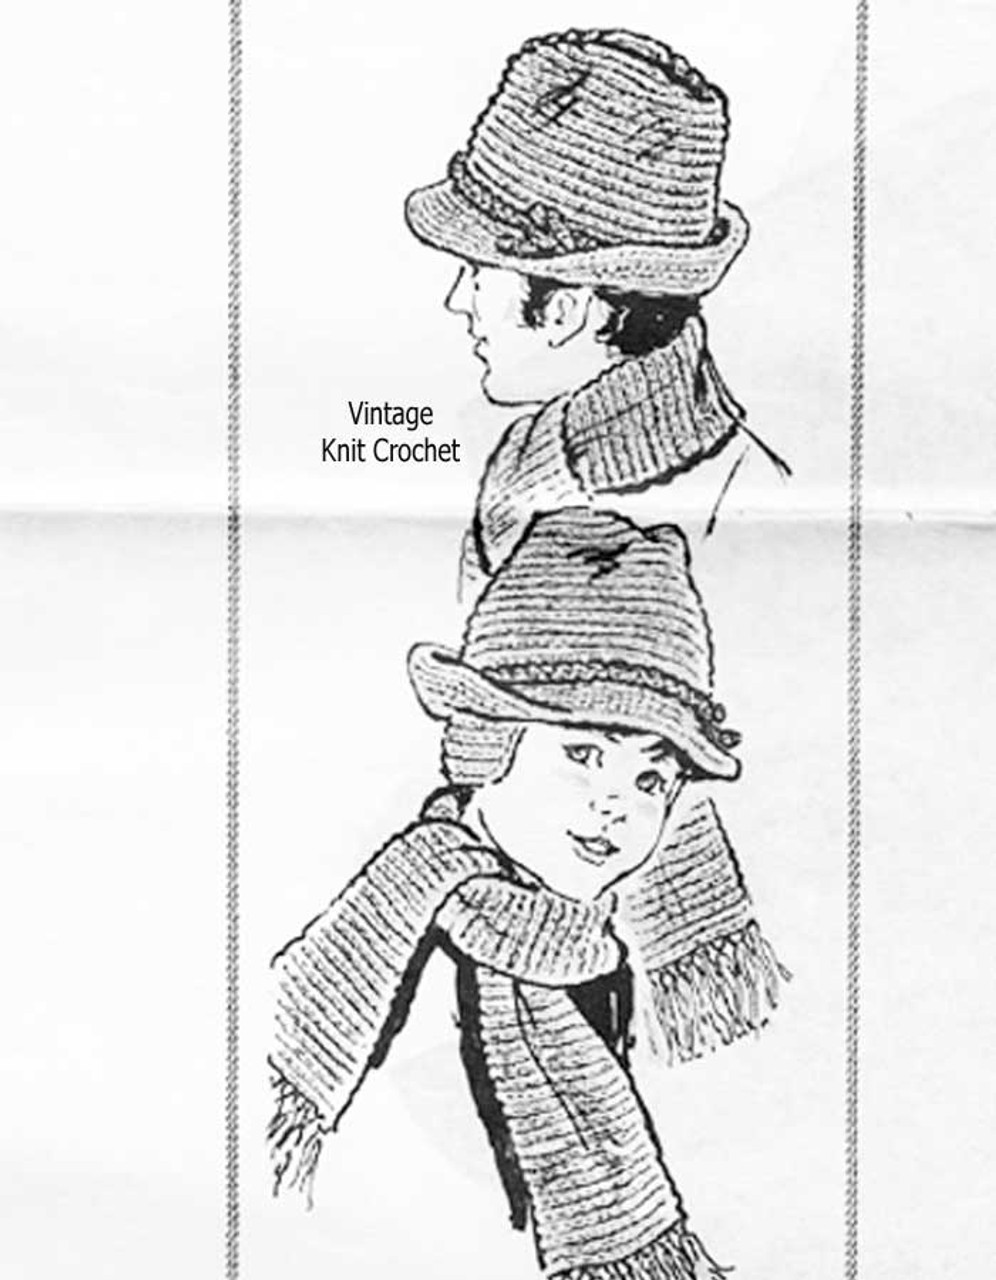 Father Son Crochet Brimmed Hats Pattern, Mail Order Design 7504